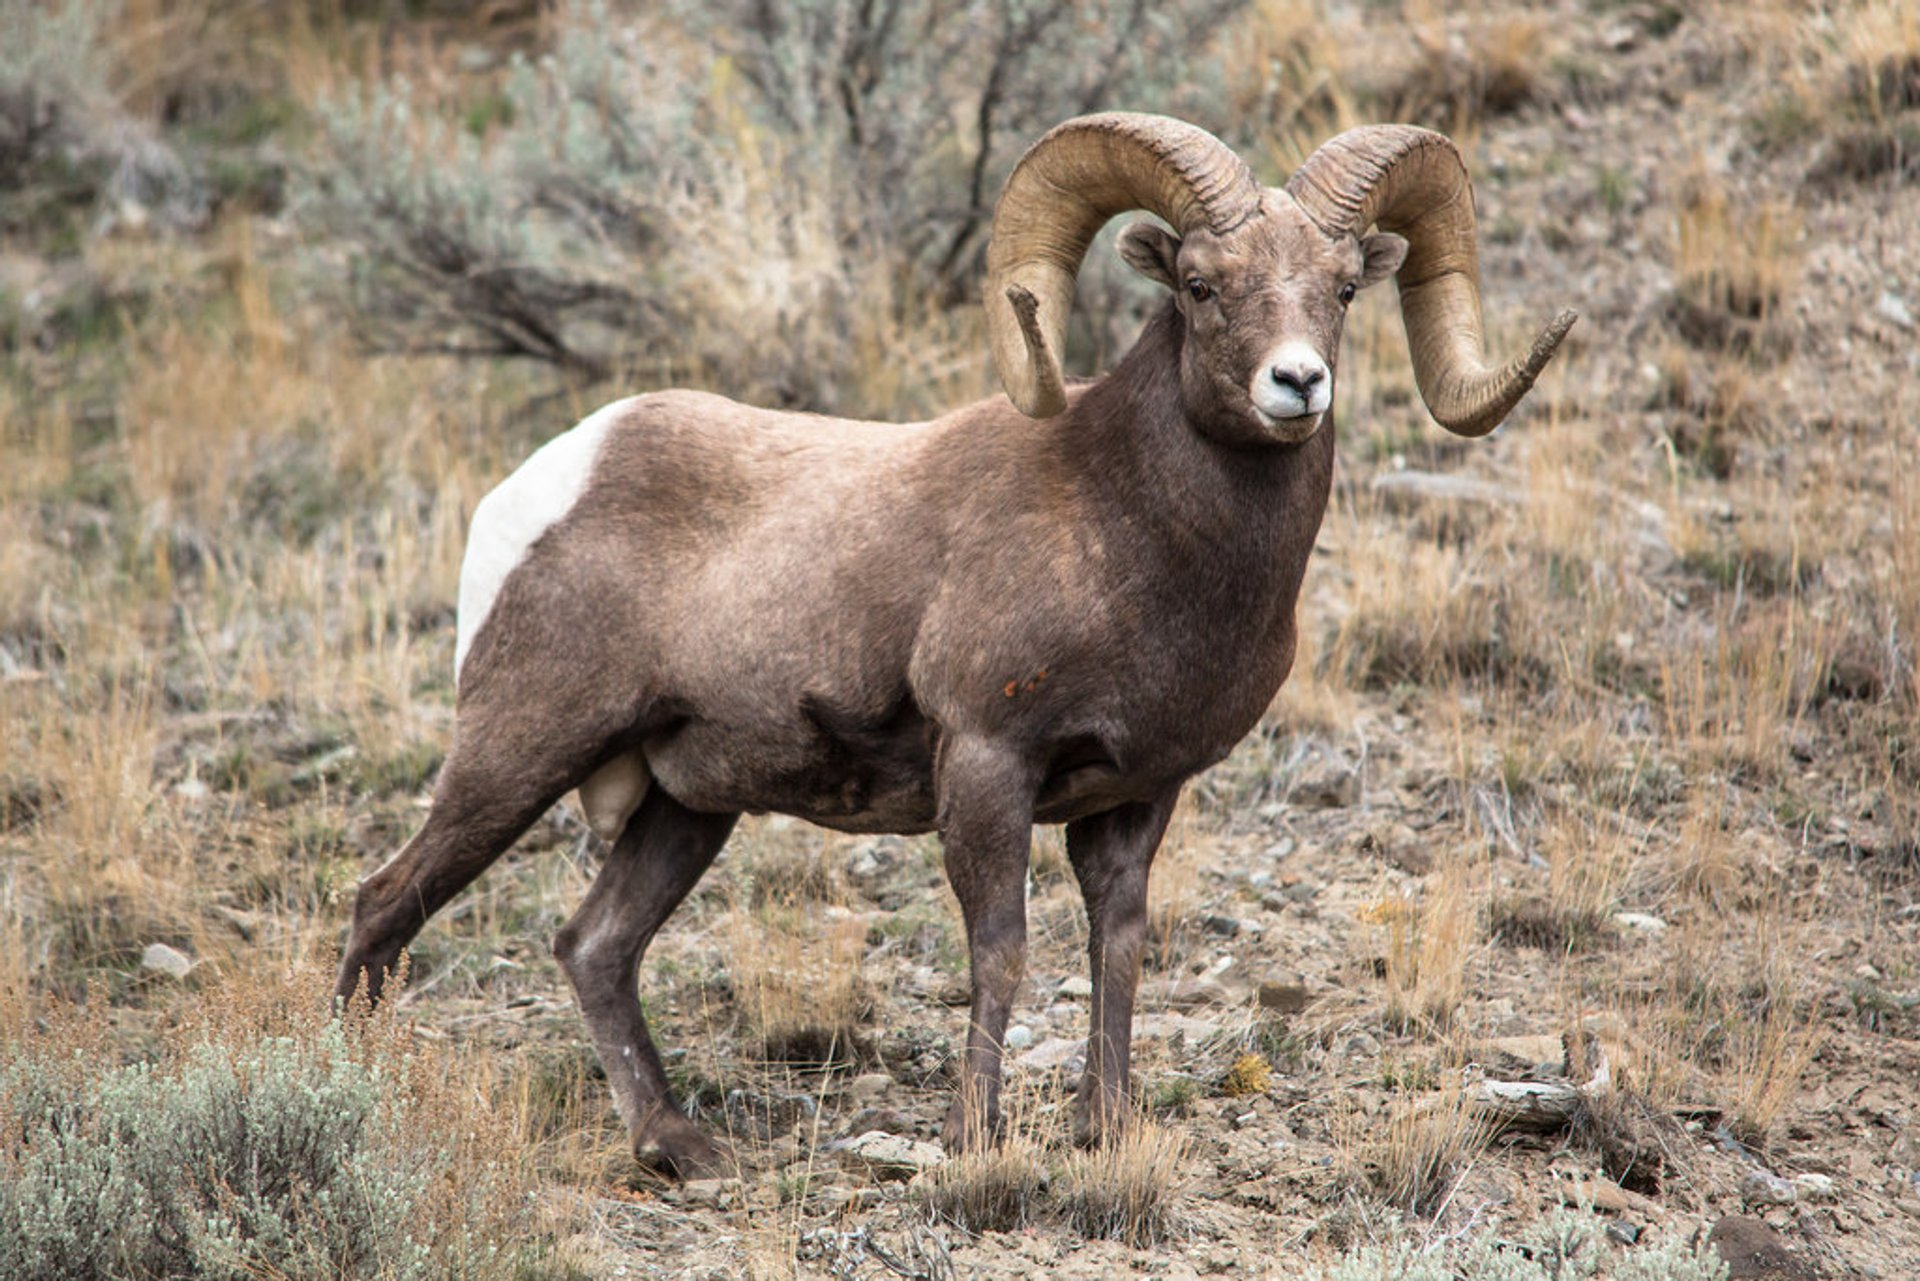 Bighorn Sheep in Yellowstone National Park 2020 - Best Time